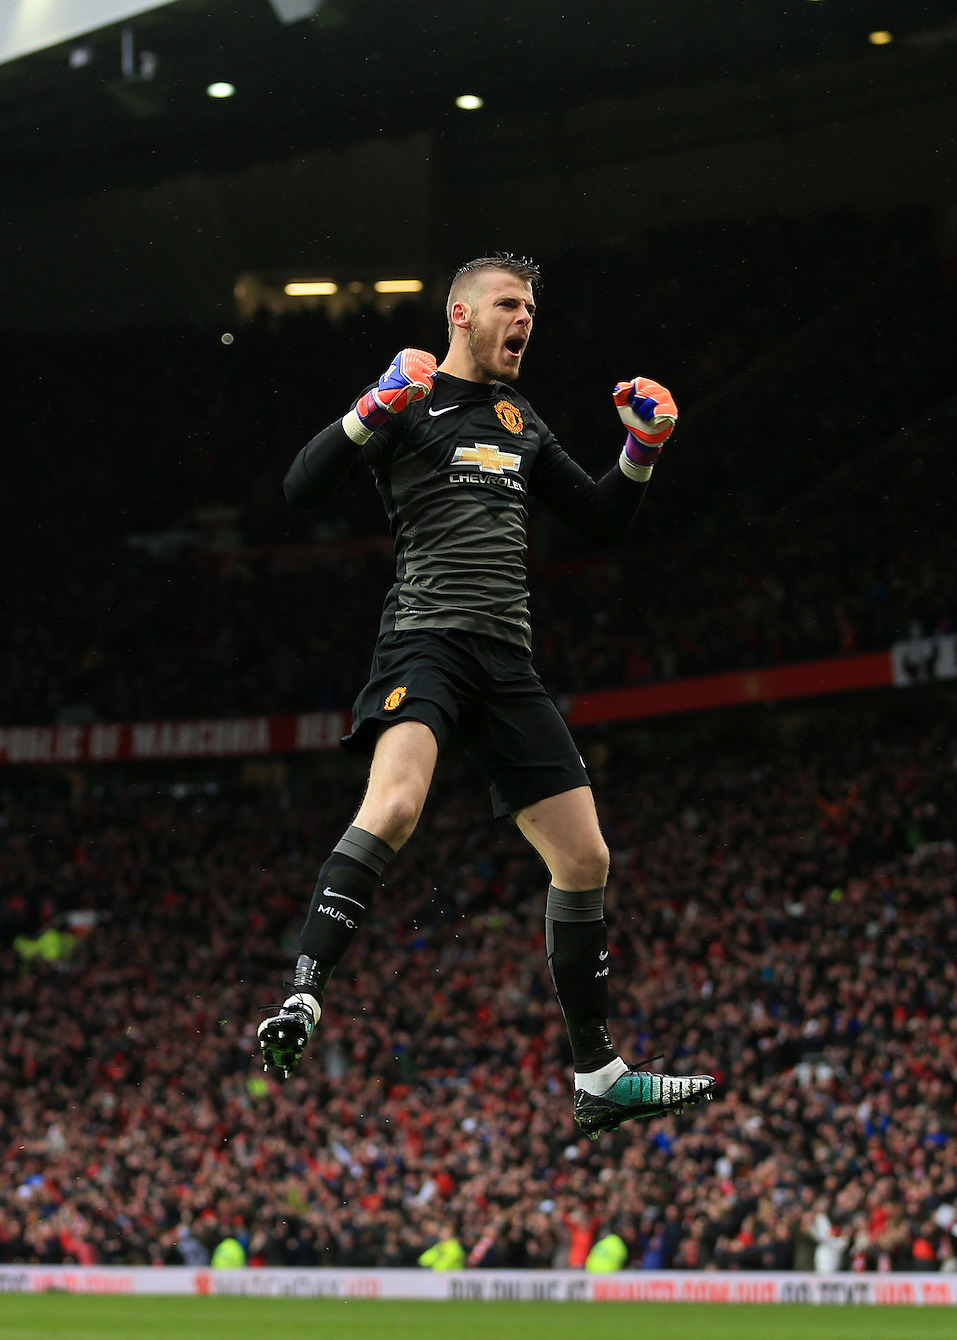 Most Latest Manchester United Wallpapers De Gea